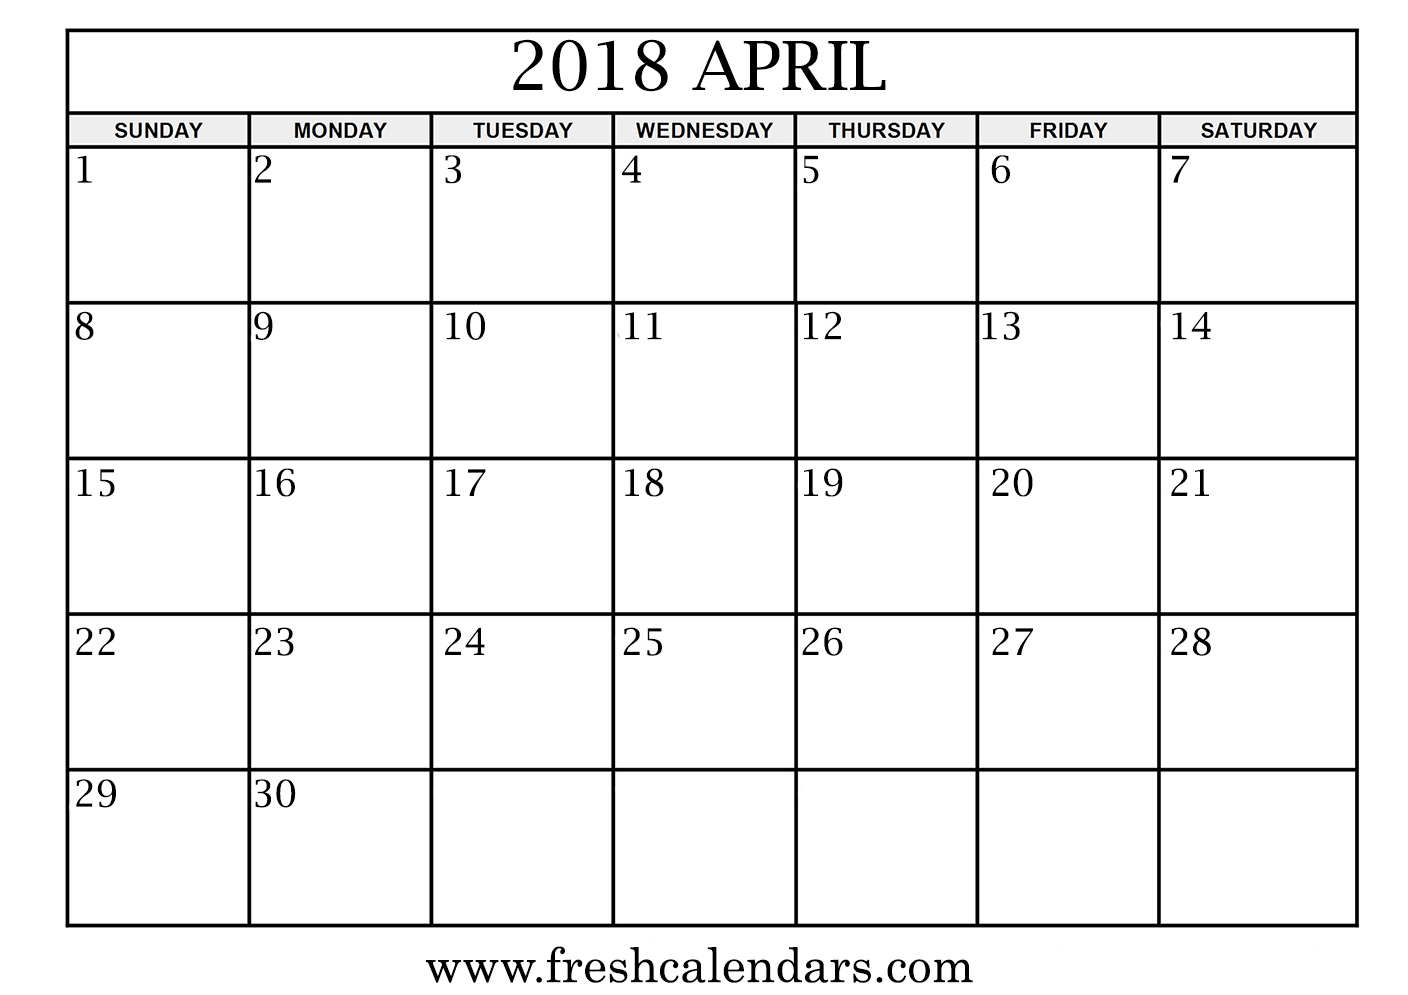 April 2018 Calendar Printable - Fresh Calendars with April Calendar Template